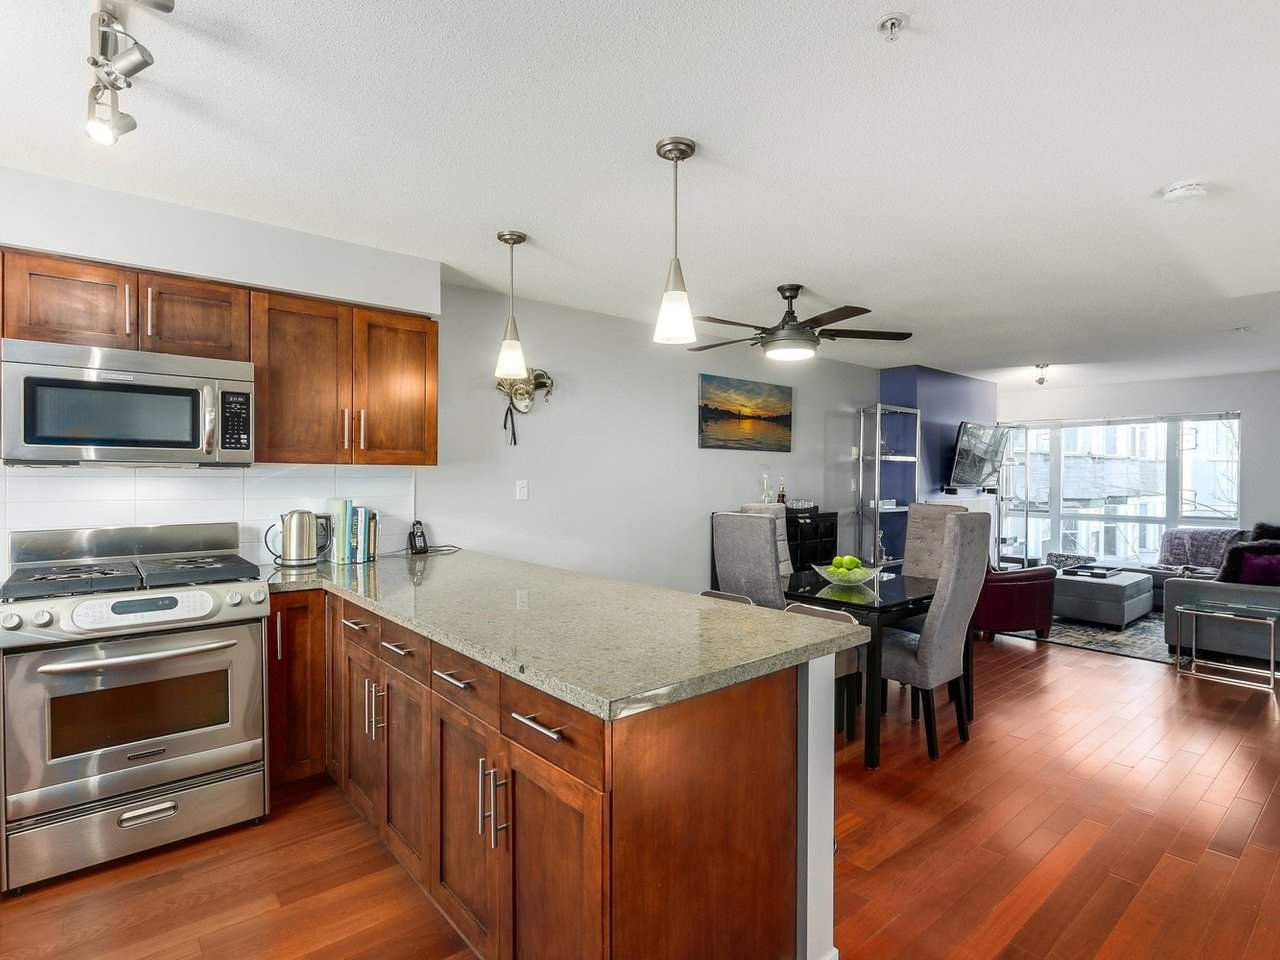 Main Photo: 119 672 W 6TH AVENUE in Vancouver: Fairview VW Townhouse for sale (Vancouver West)  : MLS®# R2401186